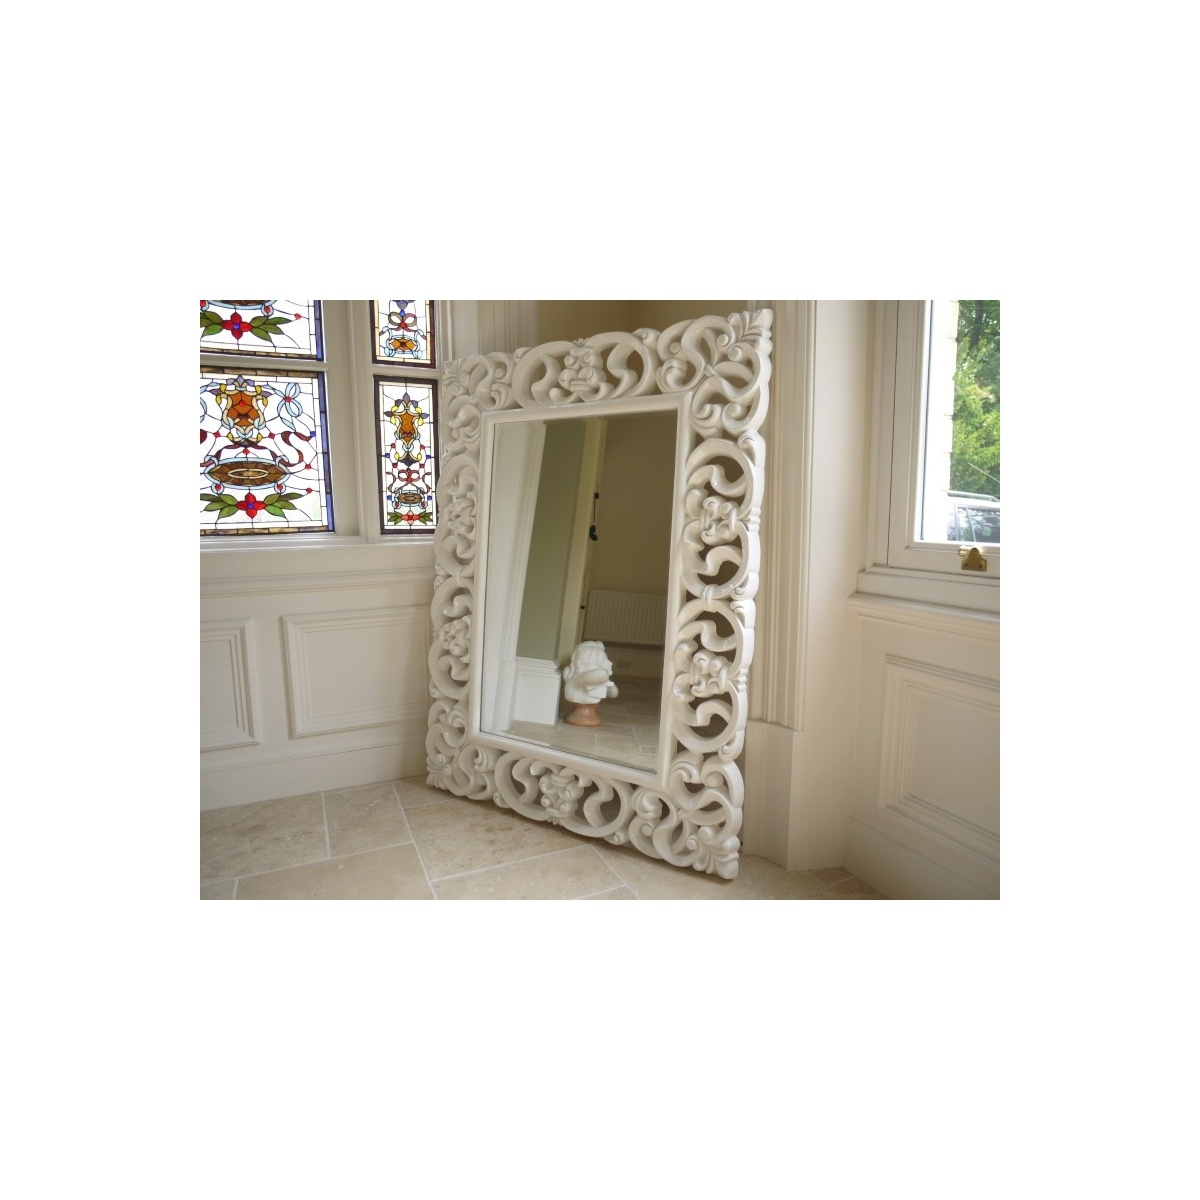 Buy Large French White Ornate Wall Mirror Swanky Interiors Pertaining To Large White Ornate Mirror (Image 4 of 15)